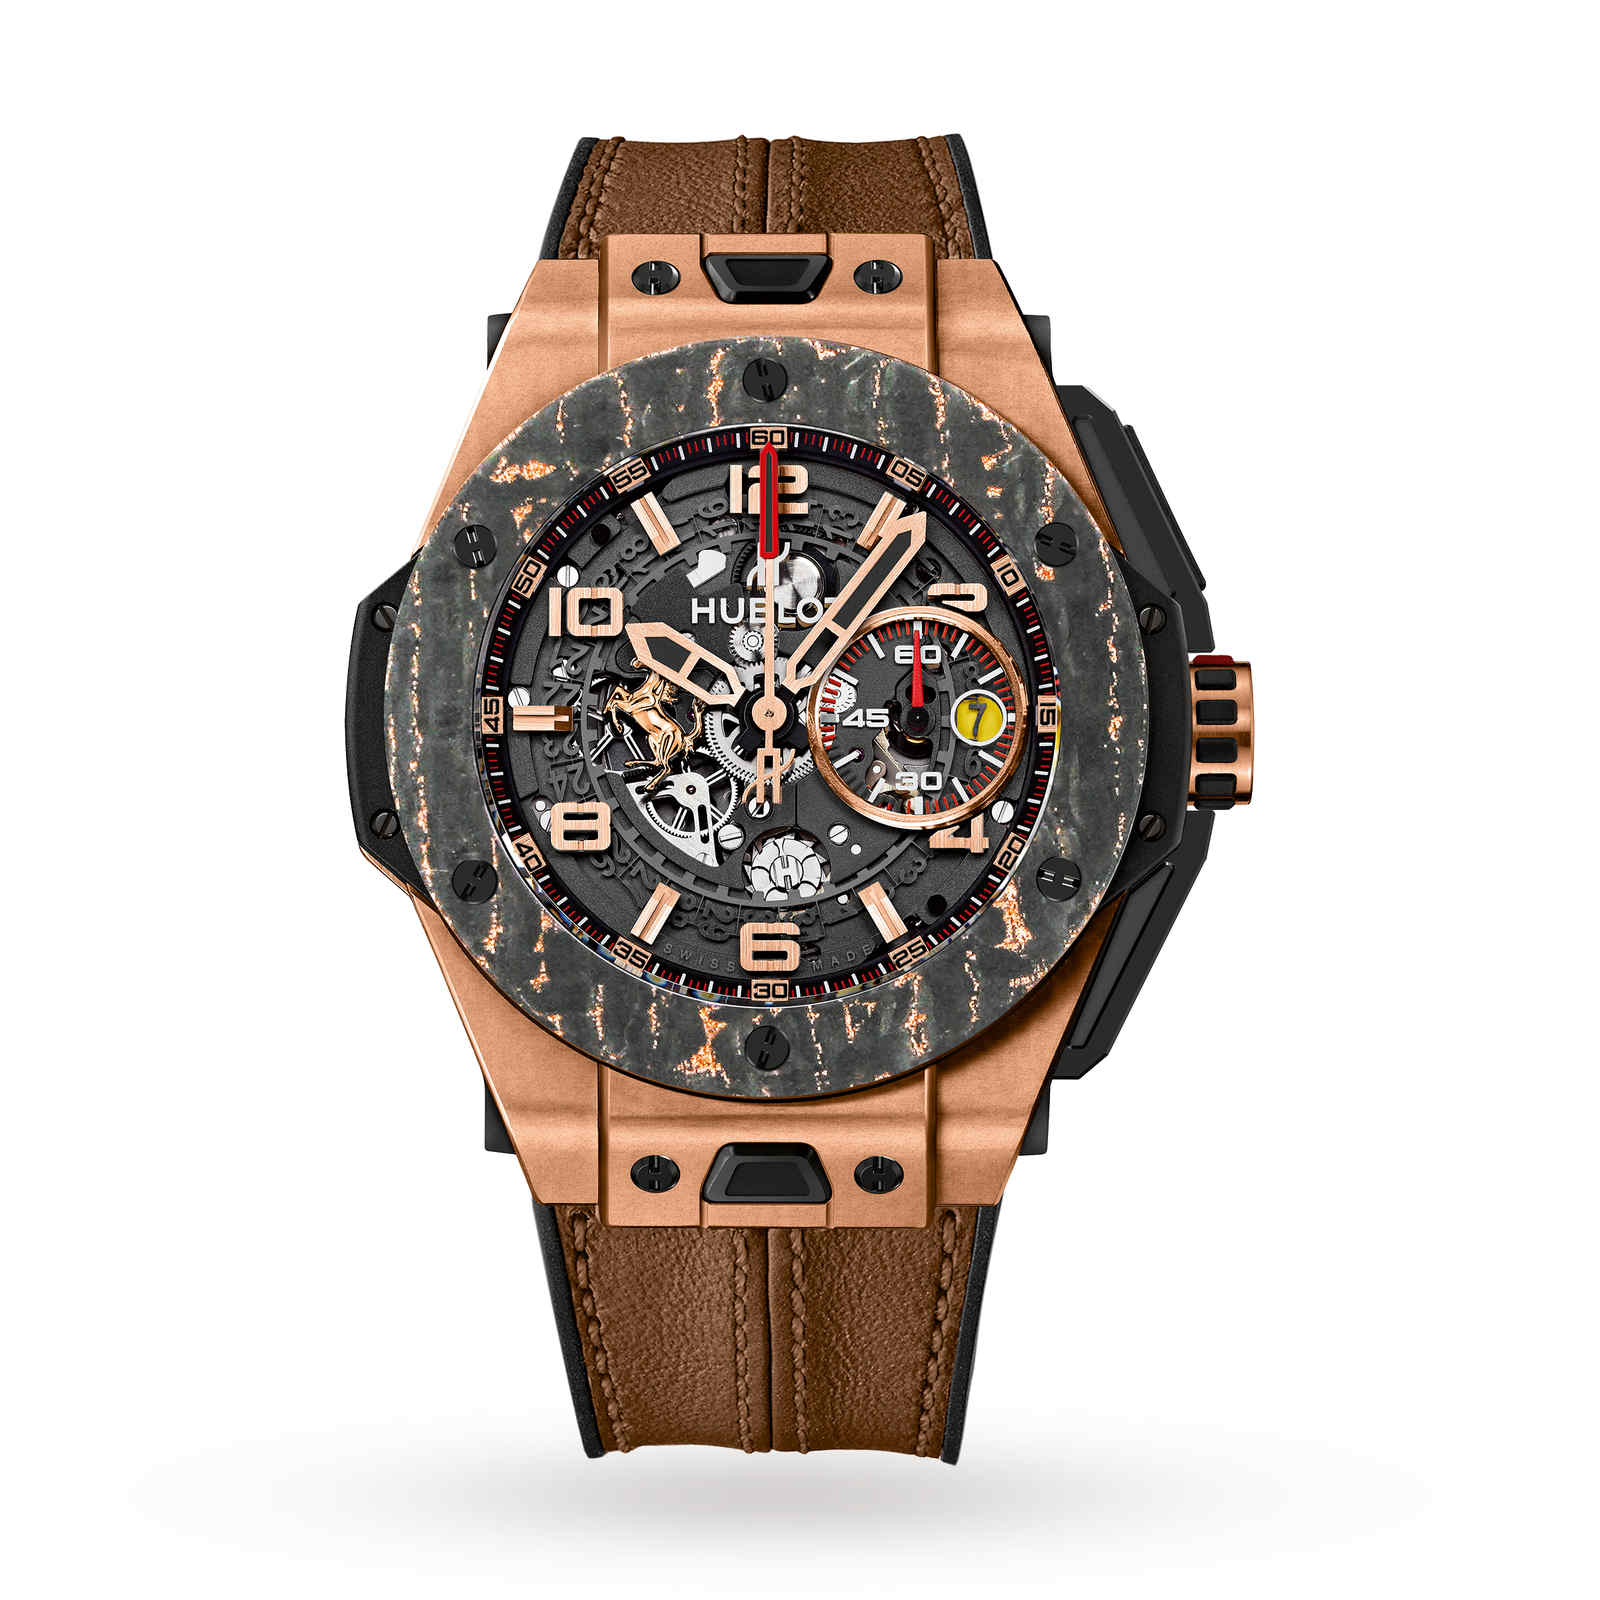 meca watches bang watch hublot ni mens availability rx big